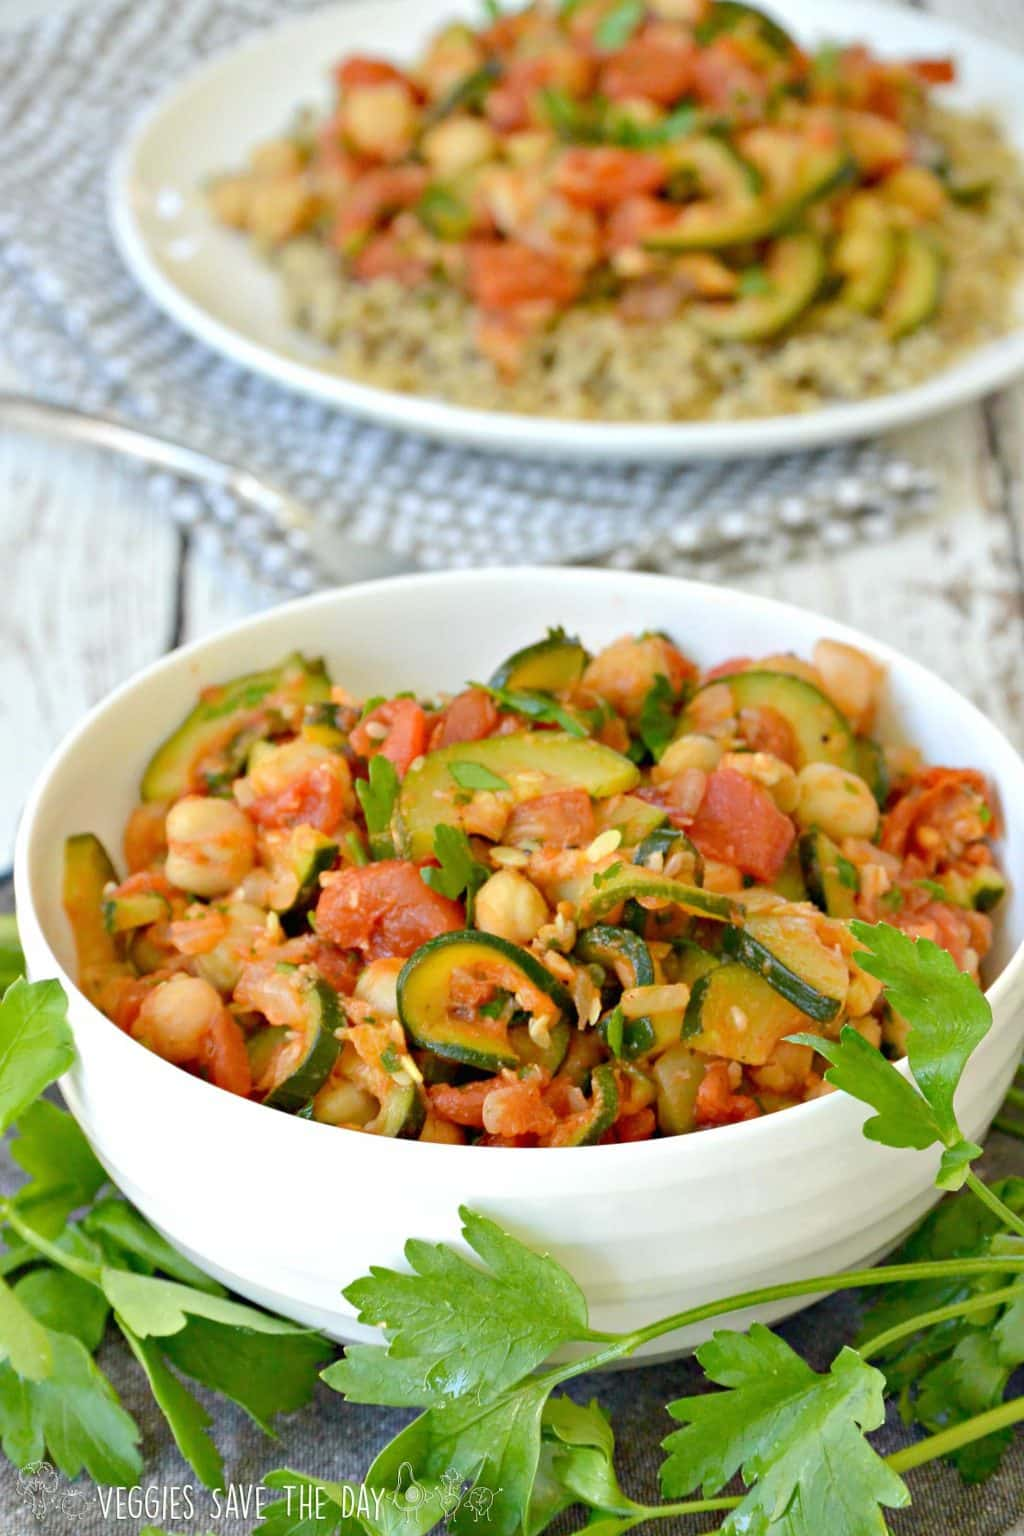 Bowl of Zucchini Chickpea Stew containing green zucchini squash, garbanzo beans, tomatoes, onion, garlic, smoked paprika, and fresh parsley. It's vegan, gluten-free, and can be prepared oil-free.